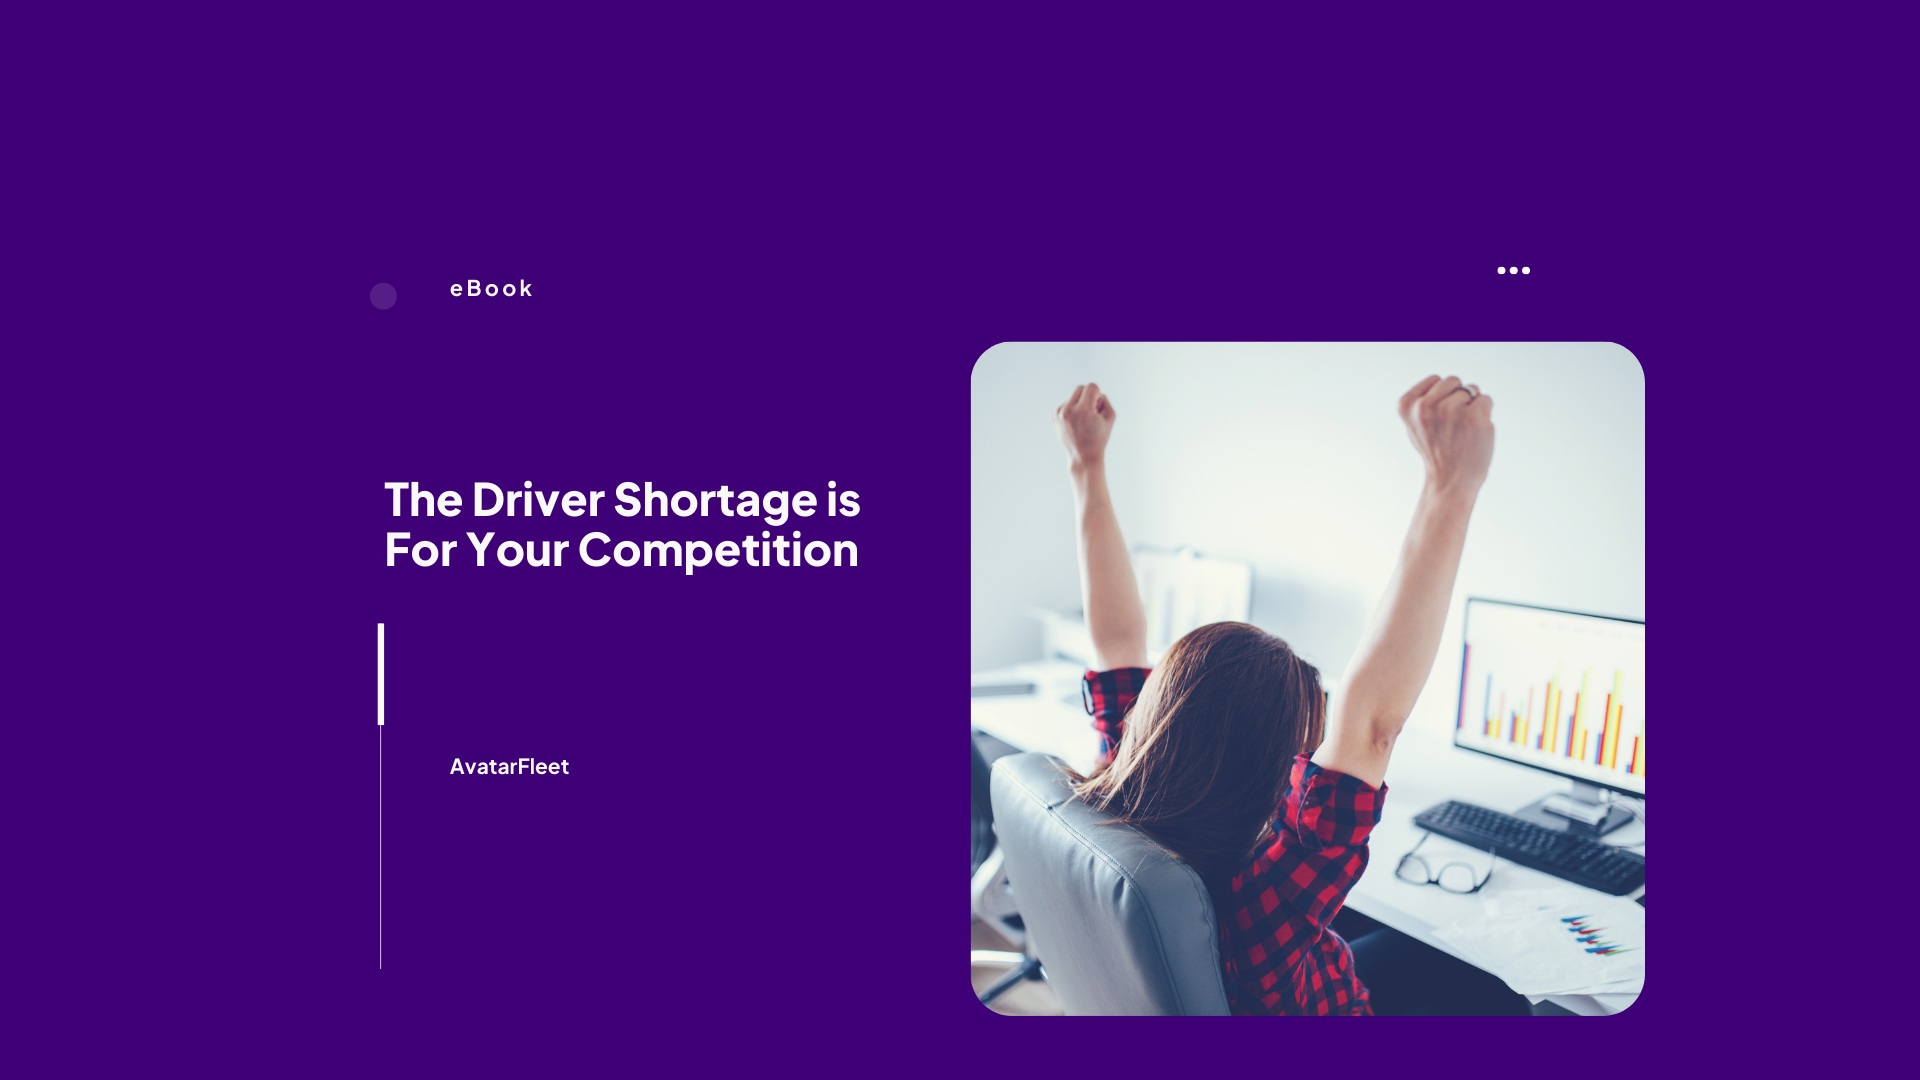 The Driver Shortage is For Your Competition